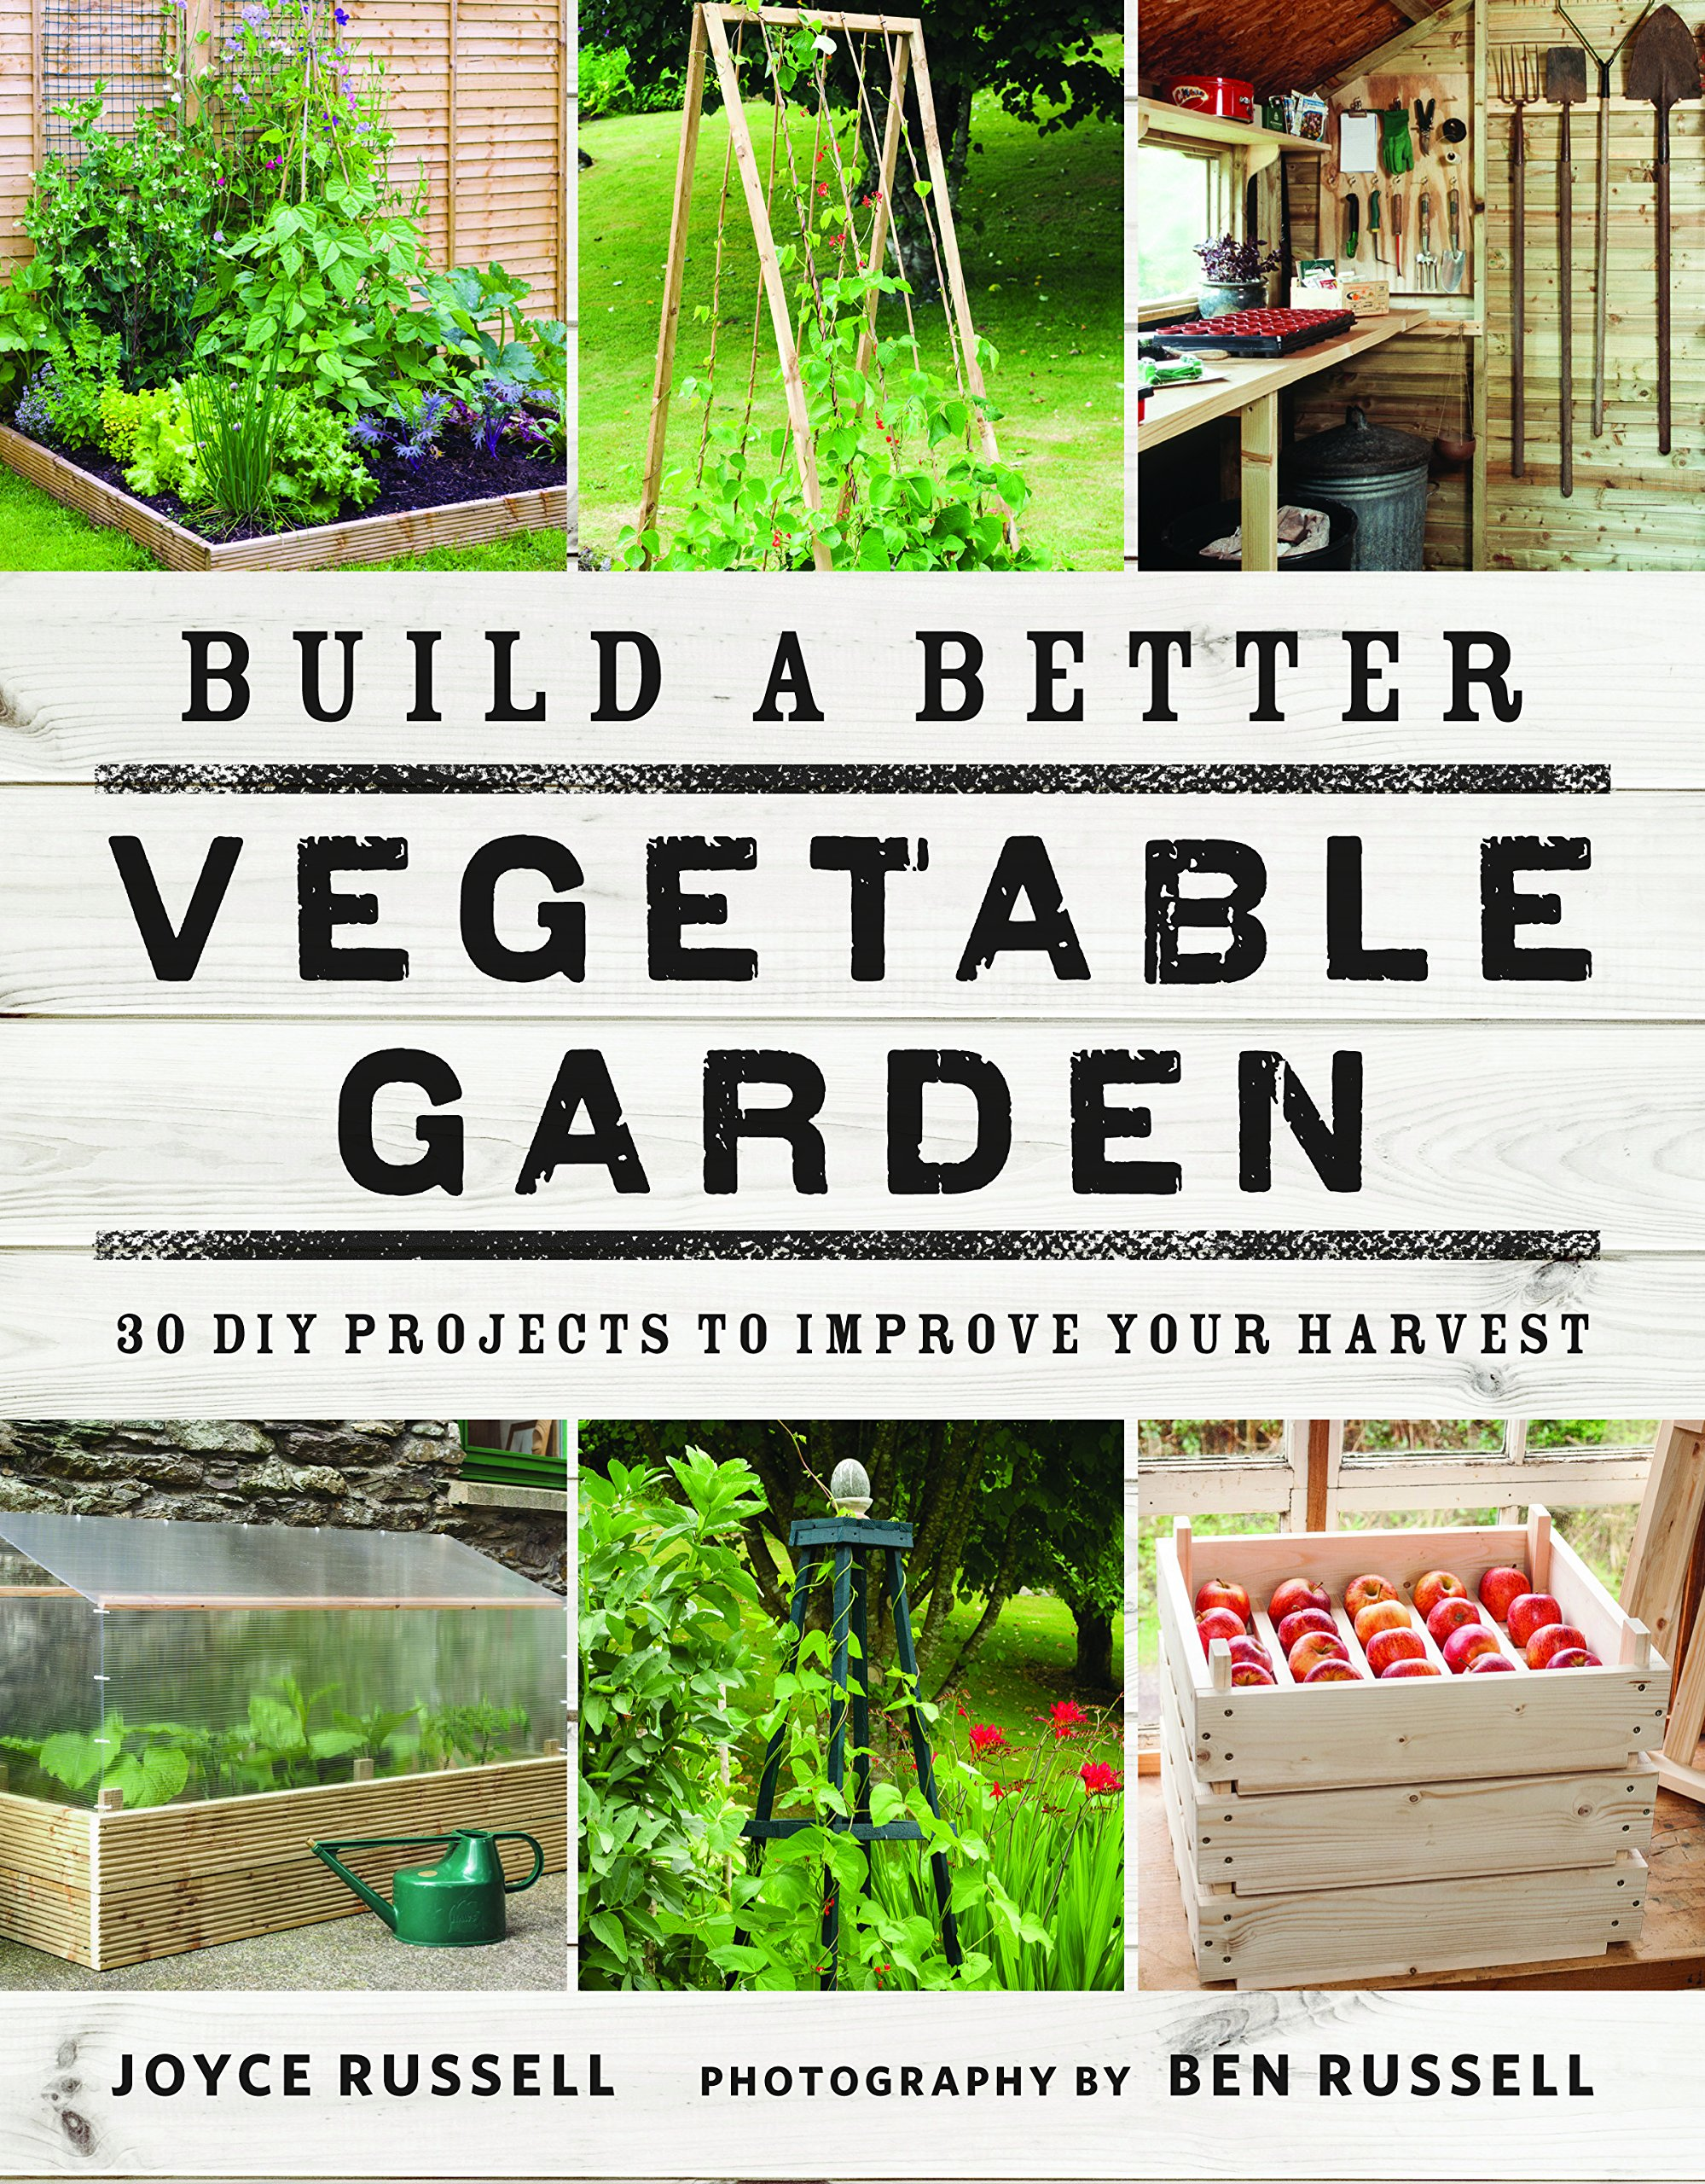 Build a Better Vegetable Garden: 30 DIY Projects to Improve your Harvest PDF